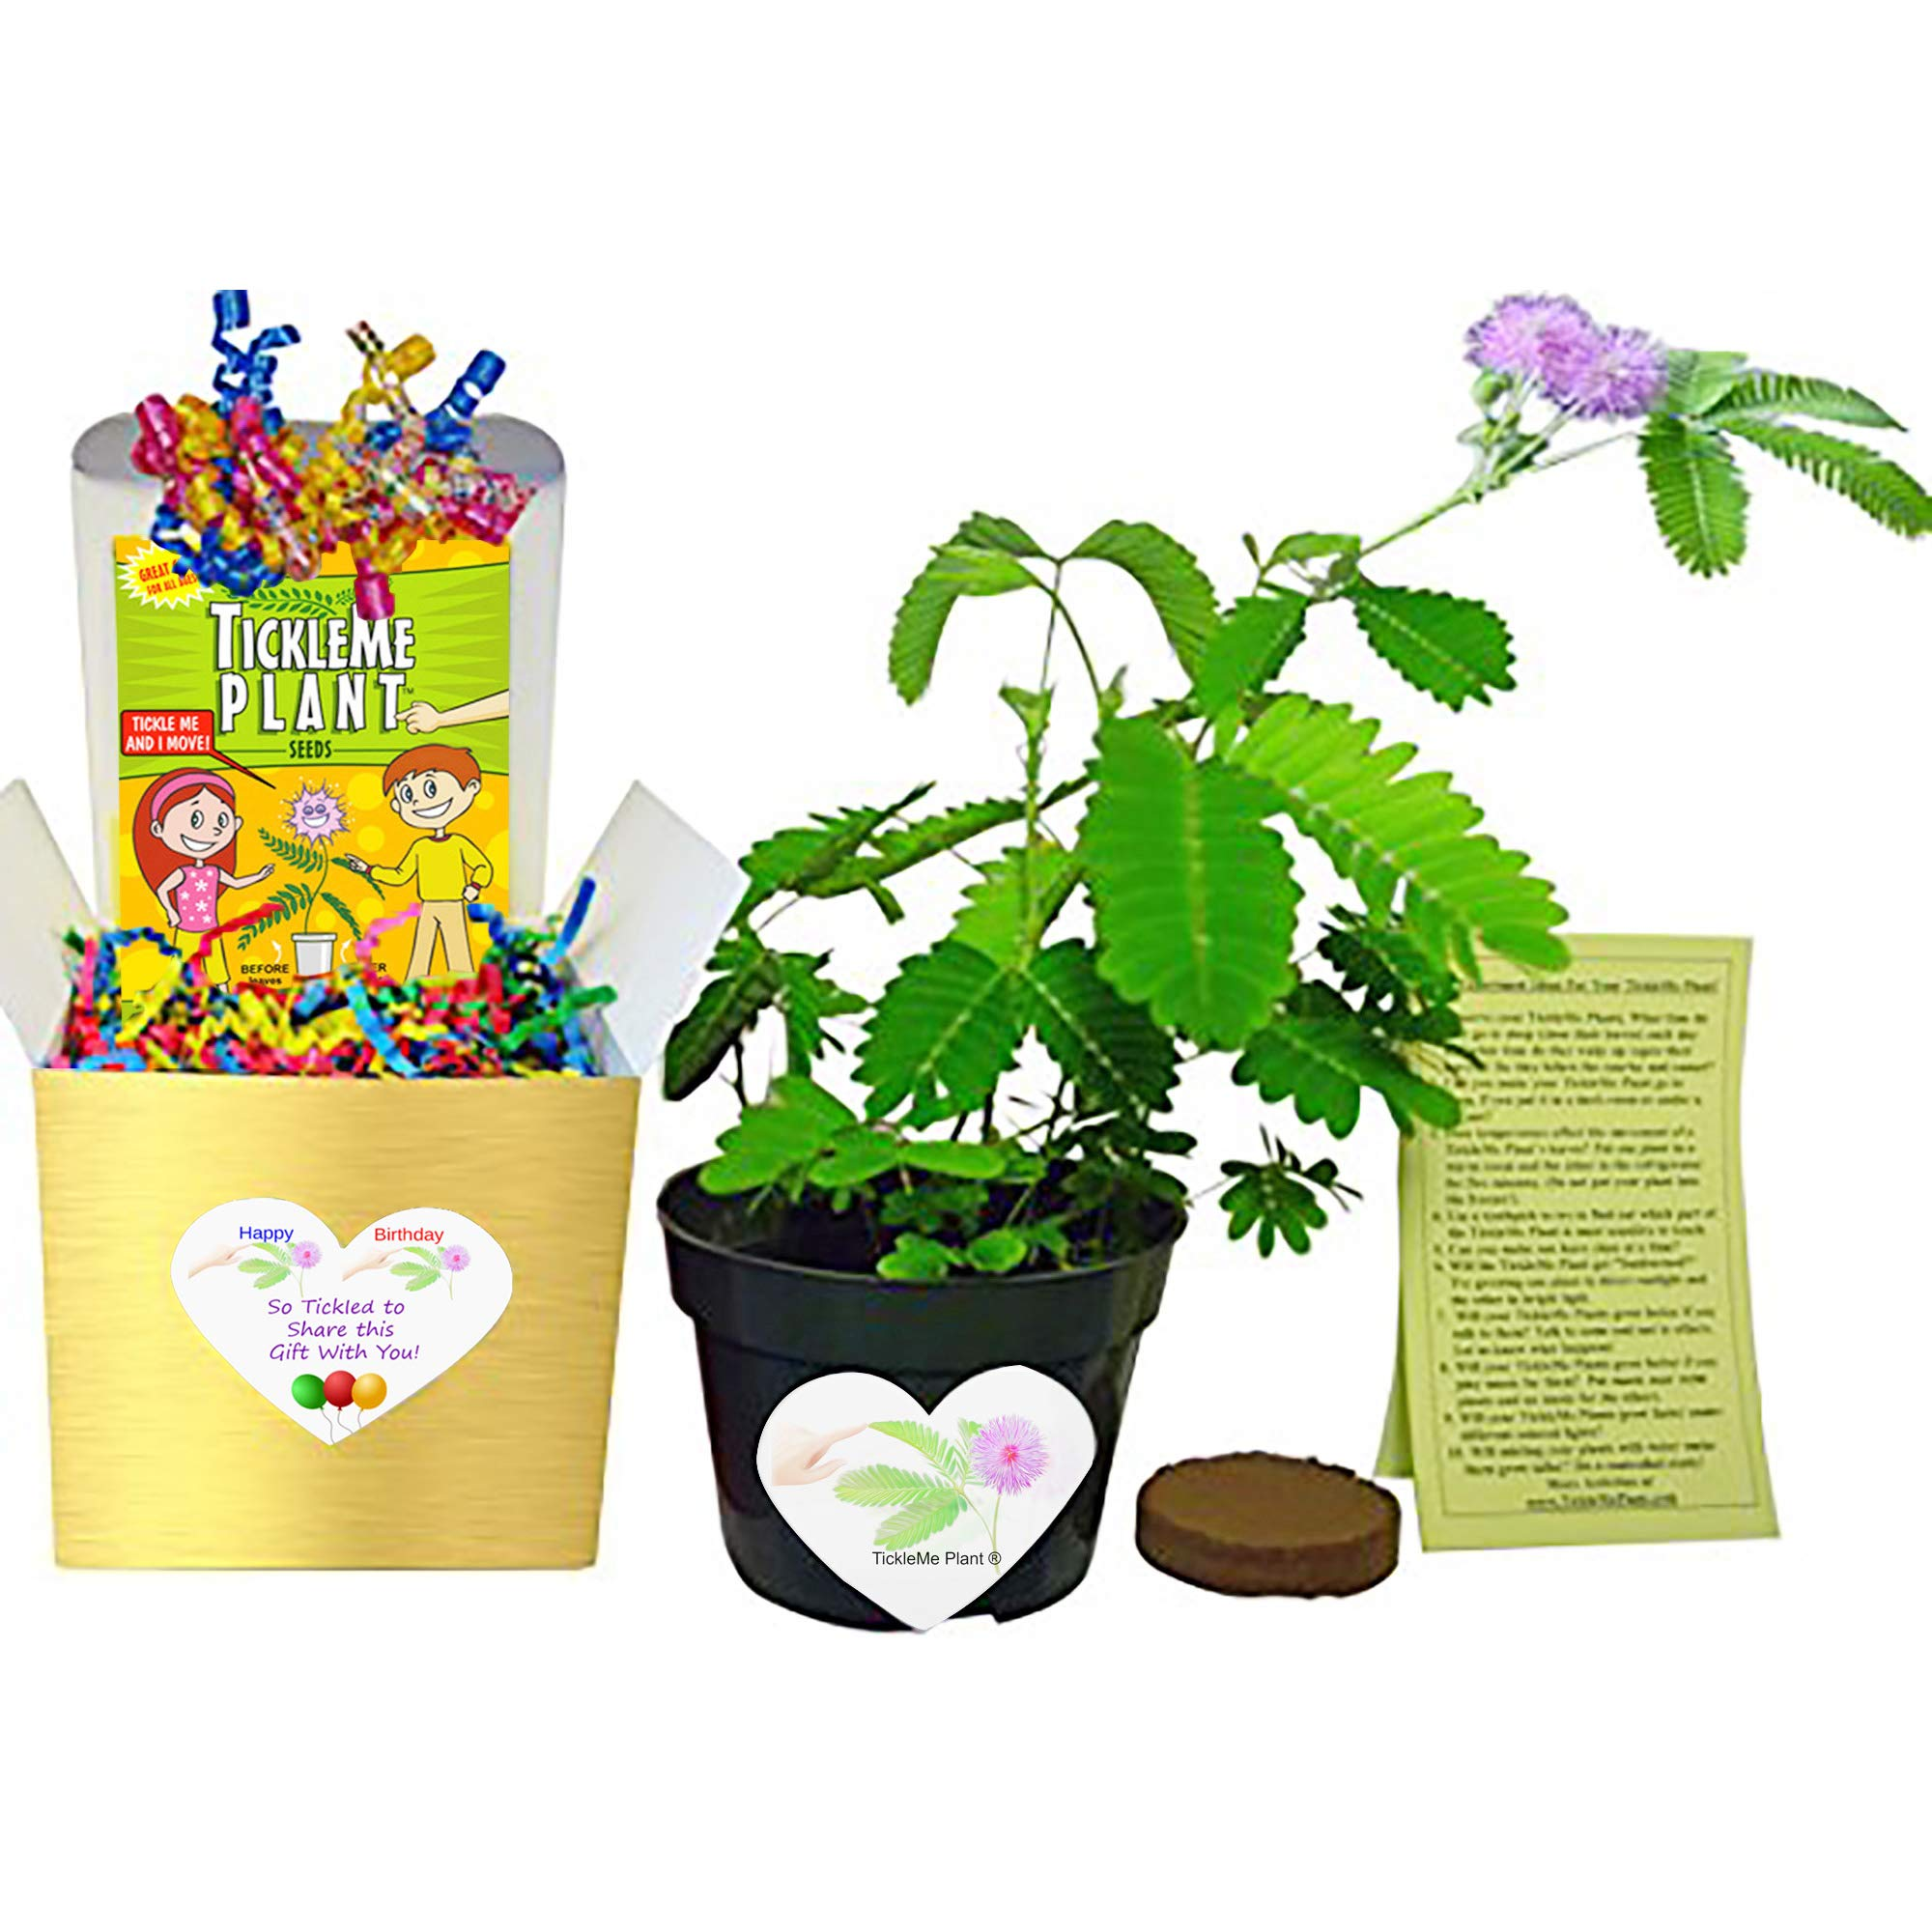 TickleMe Plant Birthday Gift Box Set - Great Unique Gift to Grow This Fun House Plant That Closes Its Leaves When You Tickle It or Blow It a Kiss! It Even Flowers. Perfect for Nature Lovers. by TickleMe Plant